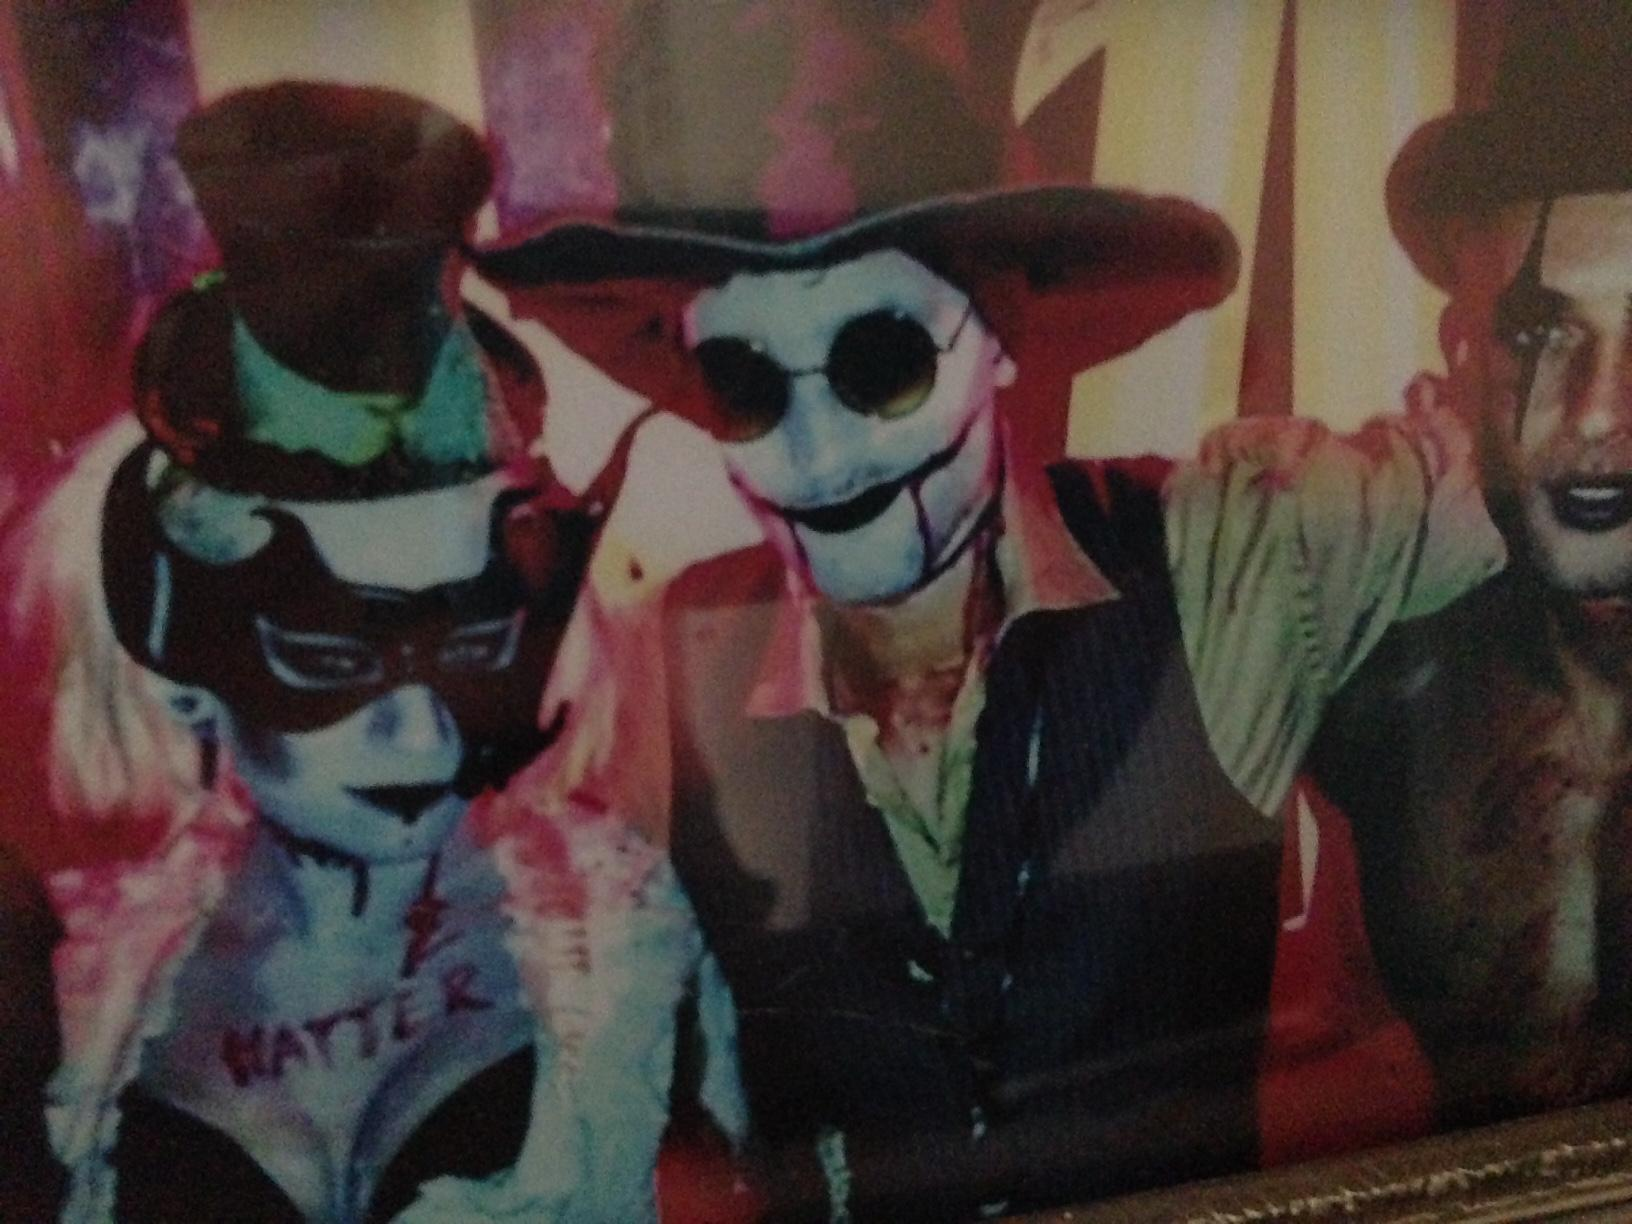 Me and @max_rogers as Mr & Mrs Mad Hatter! 2012 #fbf  at the best Halloween party around, gutted to miss it this year http://t.co/z7CGj92Mg5